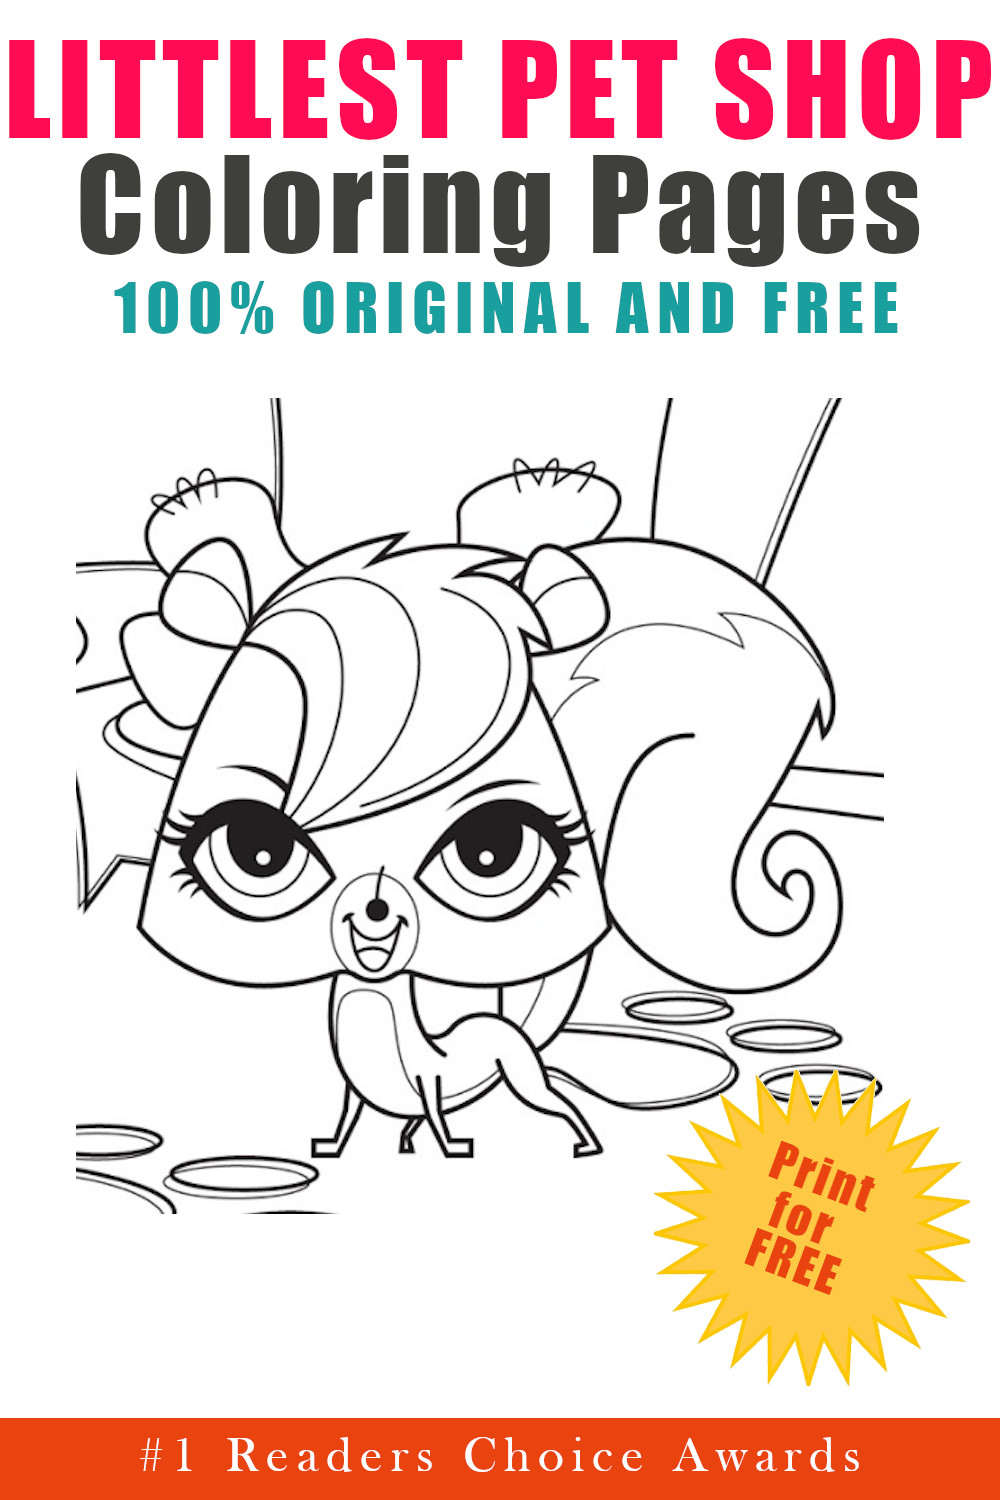 original and free littles pet shop coloring pages